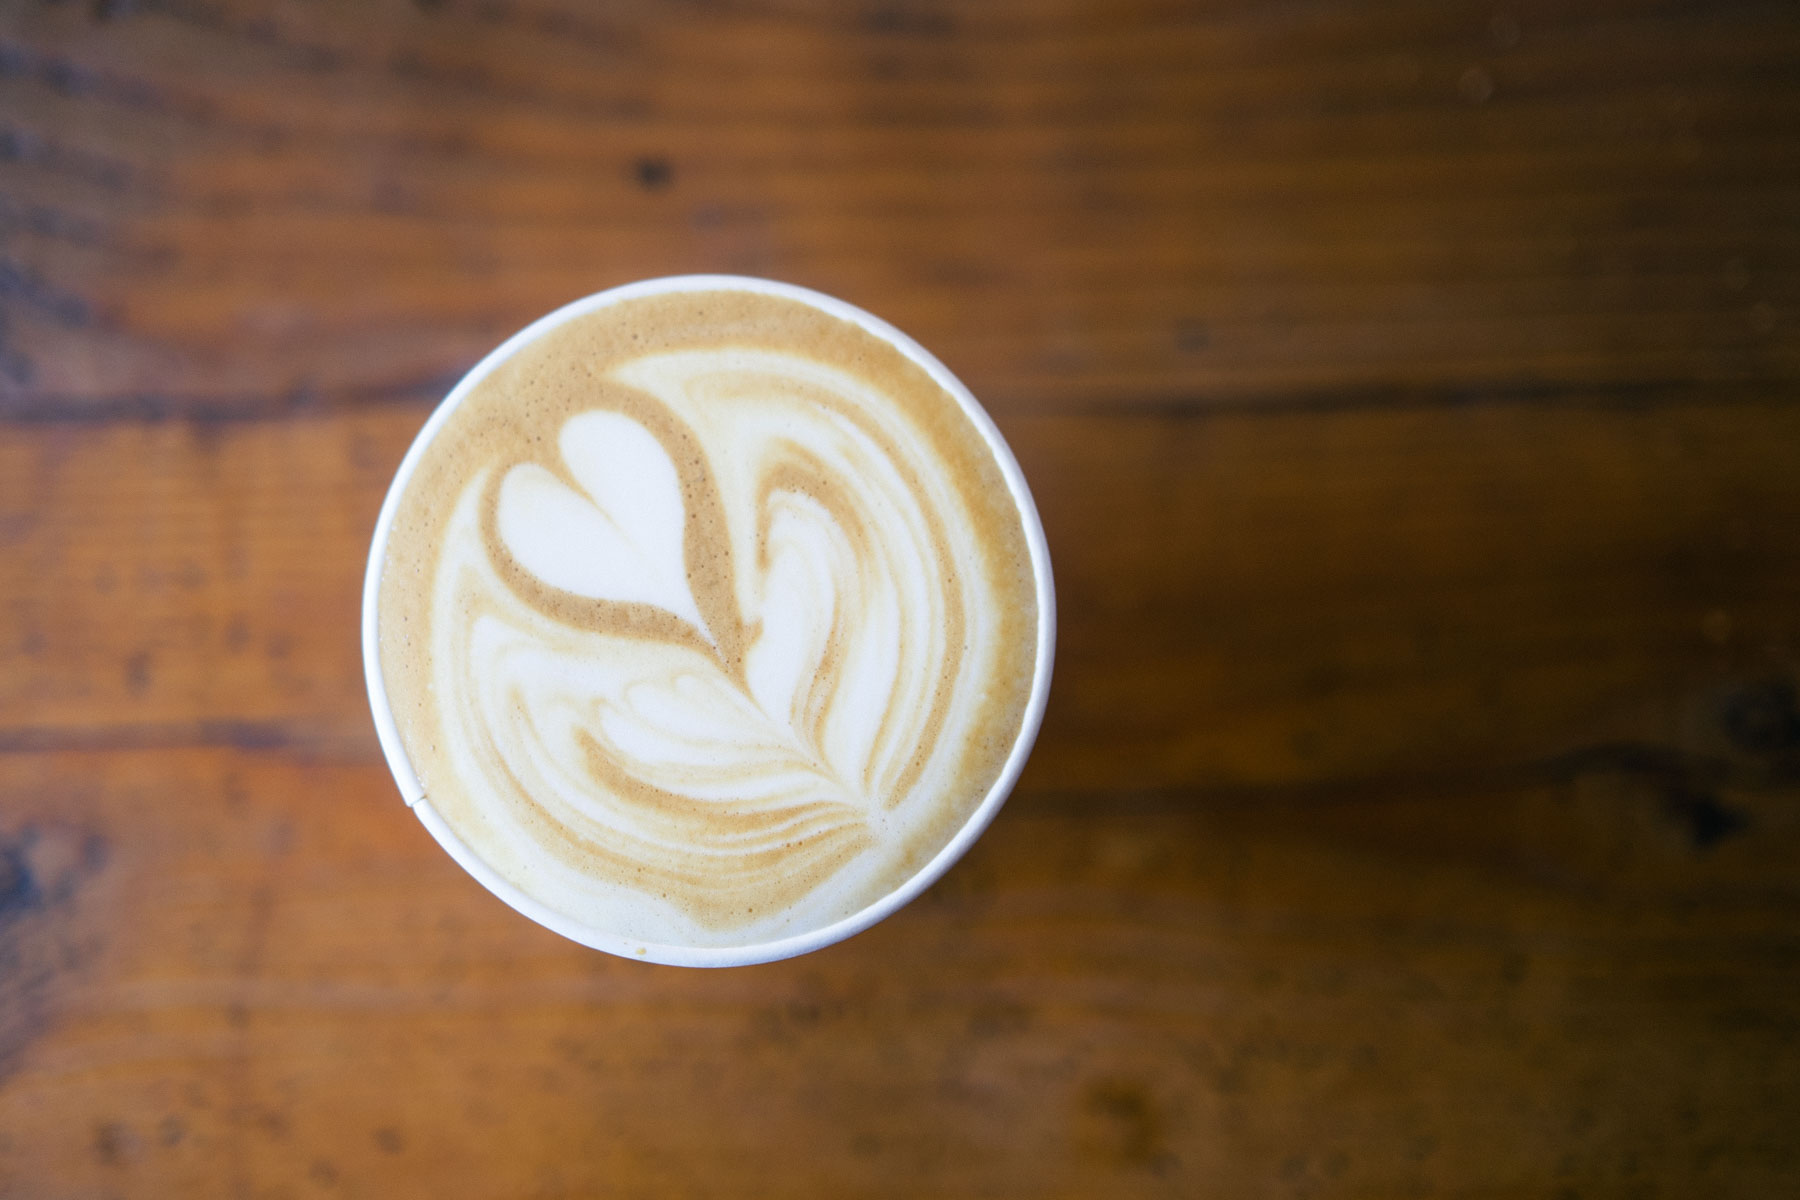 los-angeles-cray-coffee-spots-you-need-to-know-about-andante-line-cafe-deus-graffiti-sublime-intelligentsia-stumptown-2